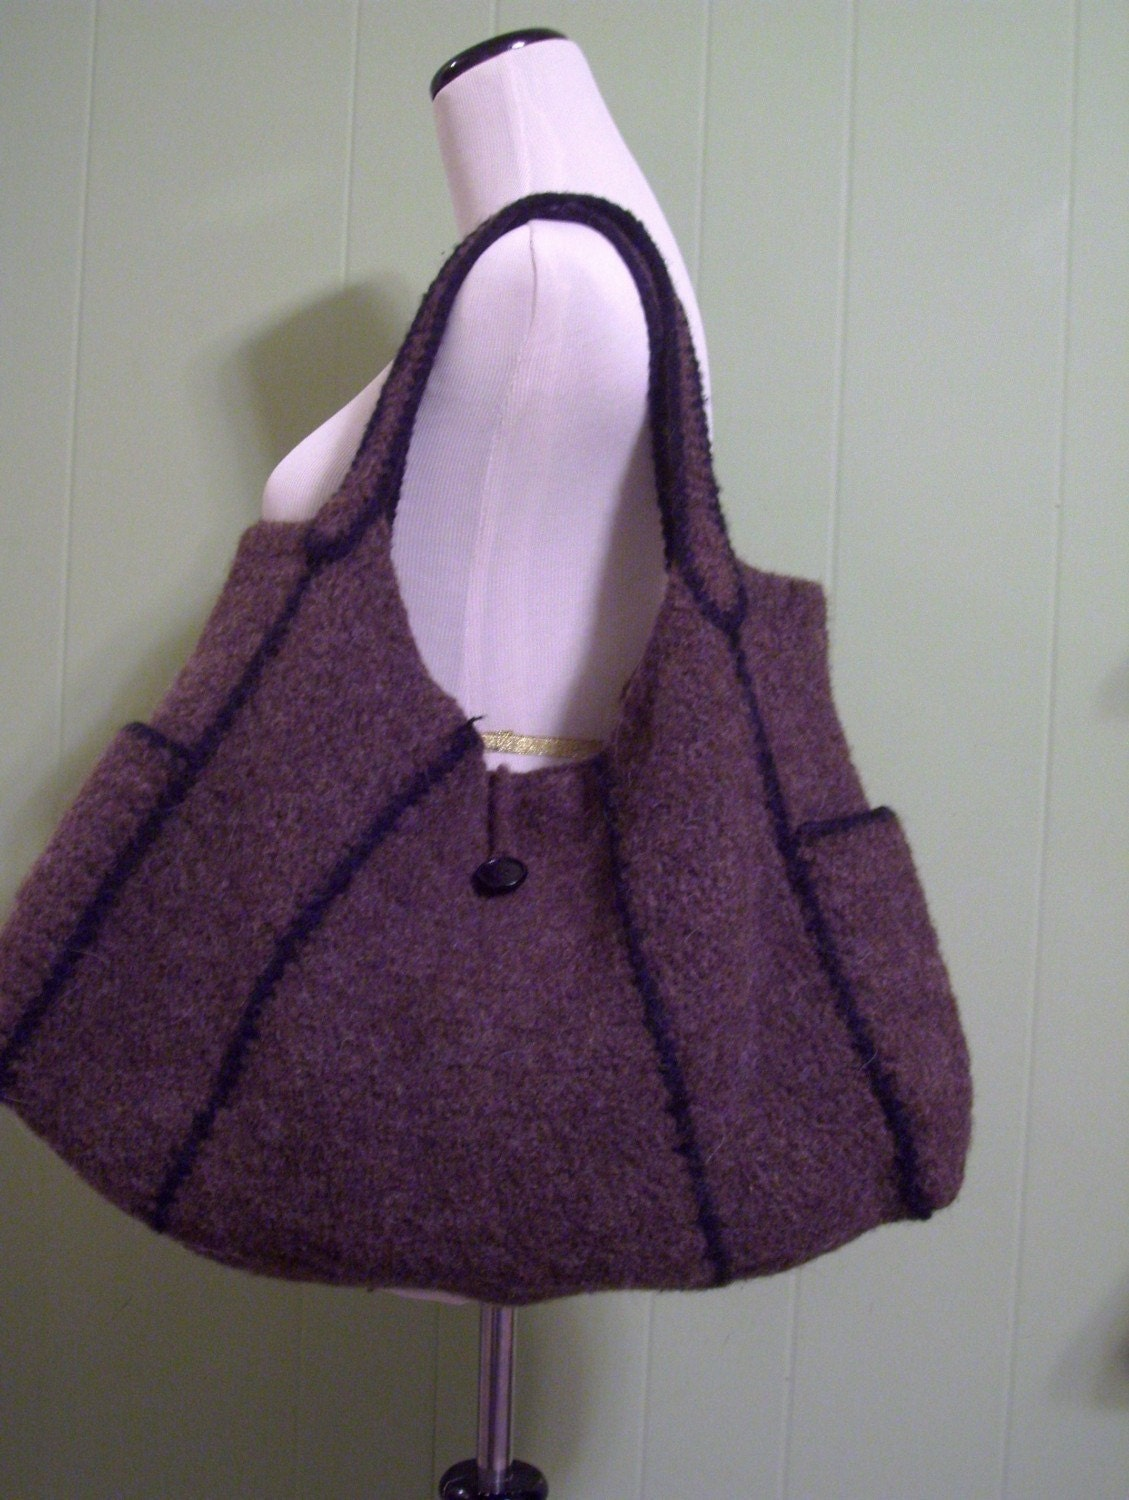 Crochet Felted Tote Bag Pattern : PATTERN Chika Modular Felted Bag Pattern PHOTO TUTORIAL